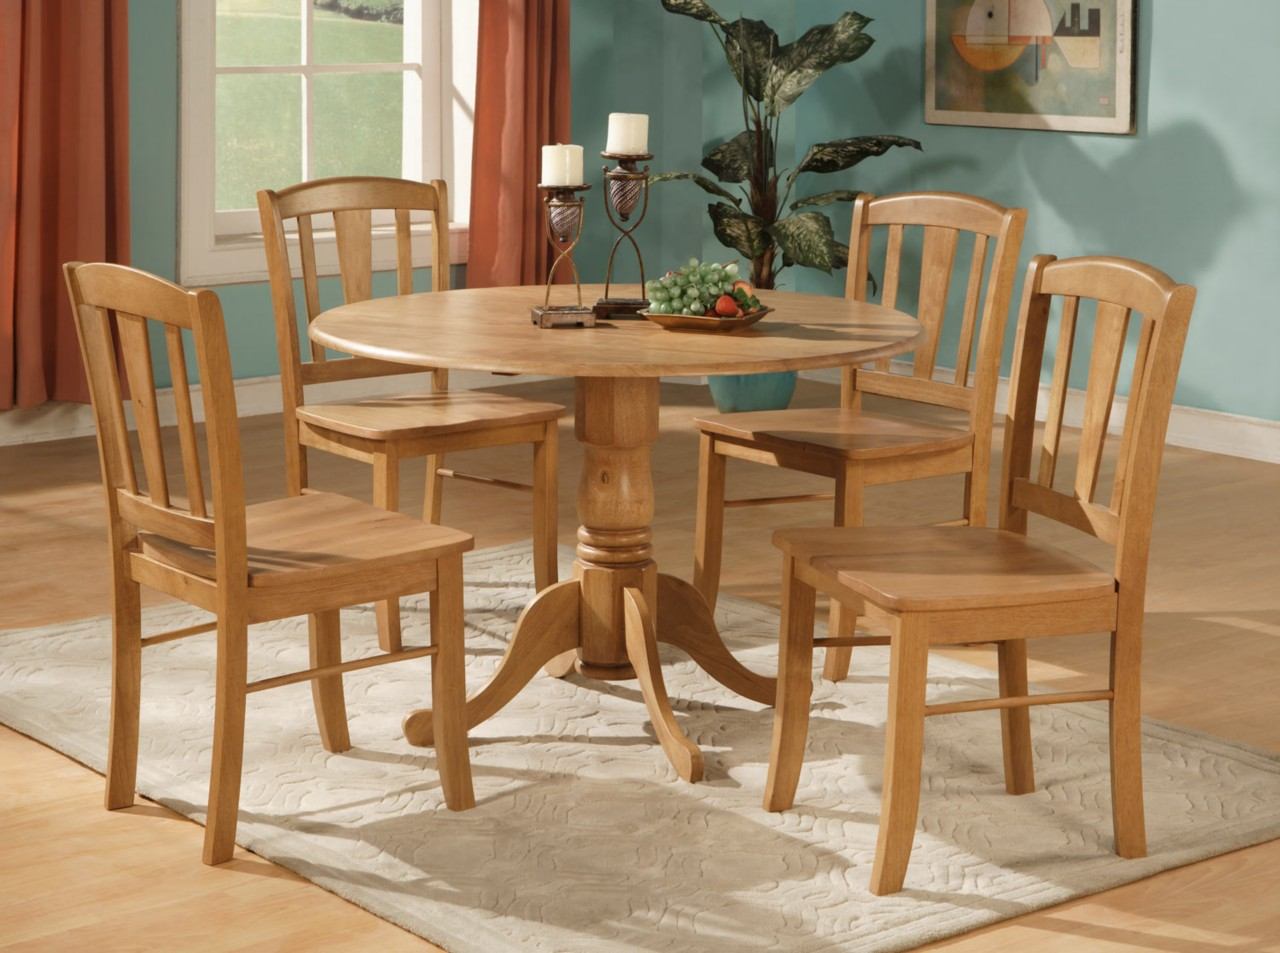 5pc round dinette kitchen dining set table and 4 chairs ebay for Kitchen dinette sets